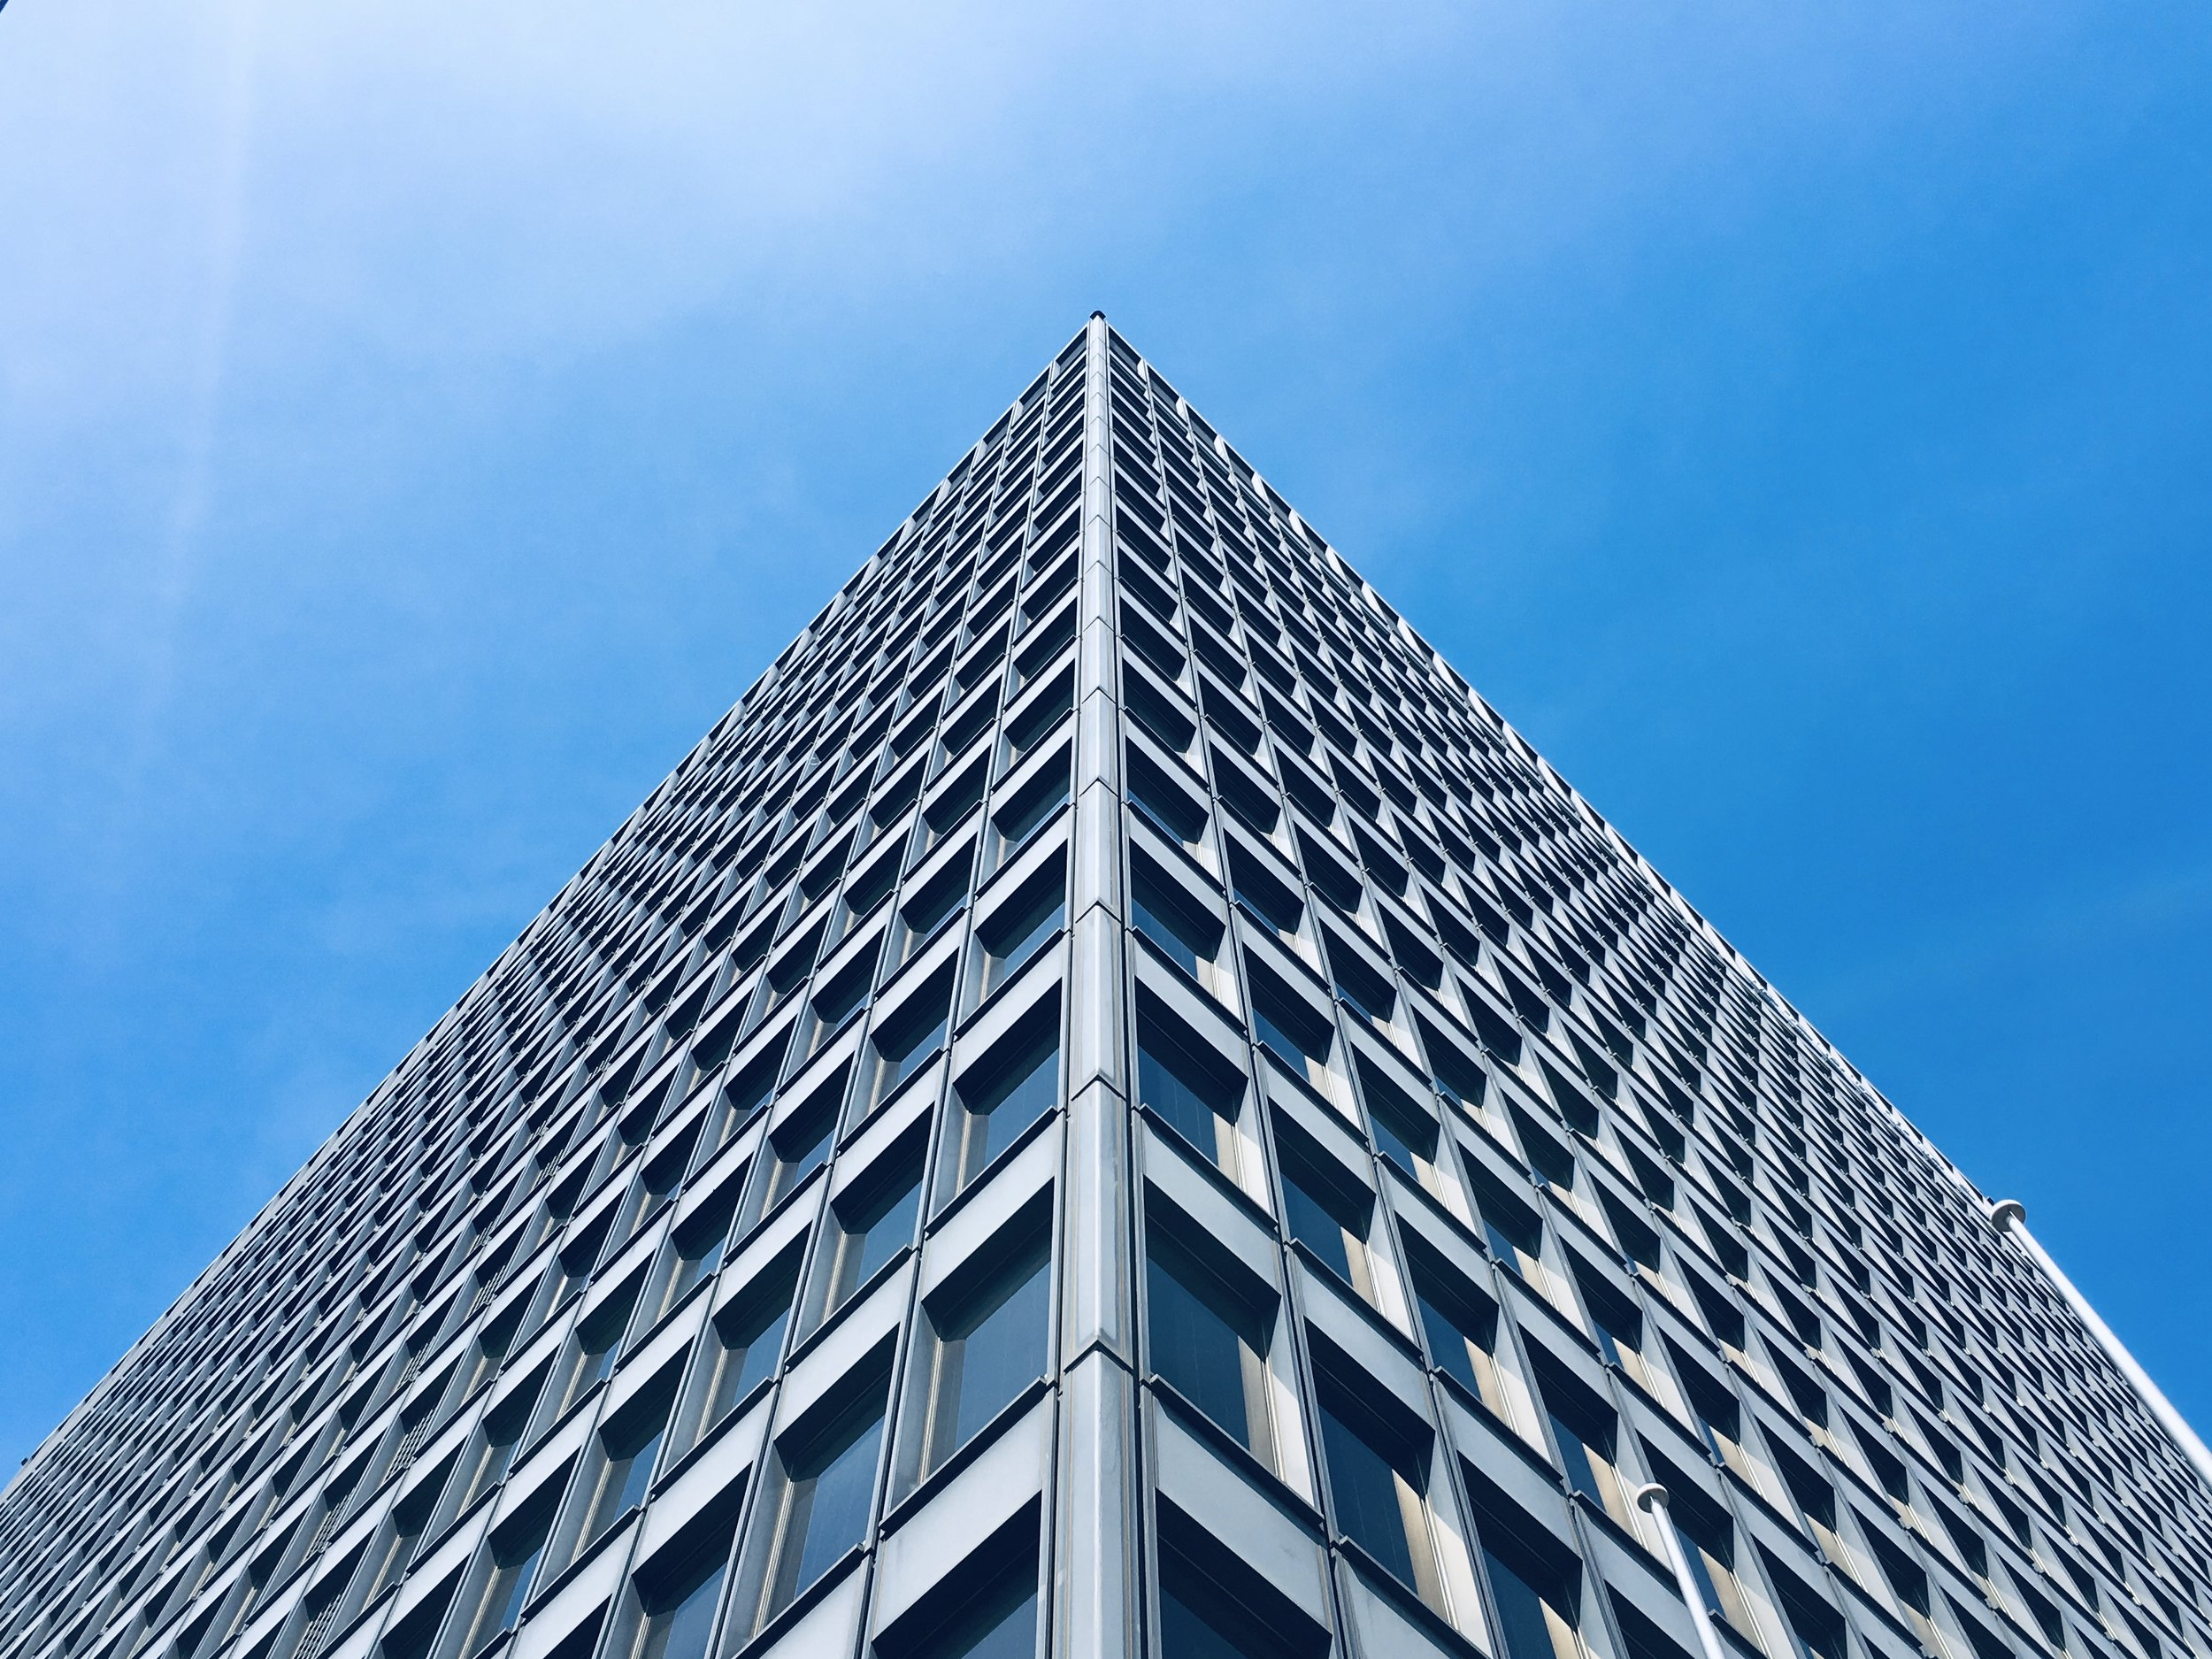 Solar window on a high rise building, Generate  free electricity ,  allow light to pass through , reduce  harmful ultra violet rays . (Photo credit: Scott Webb)